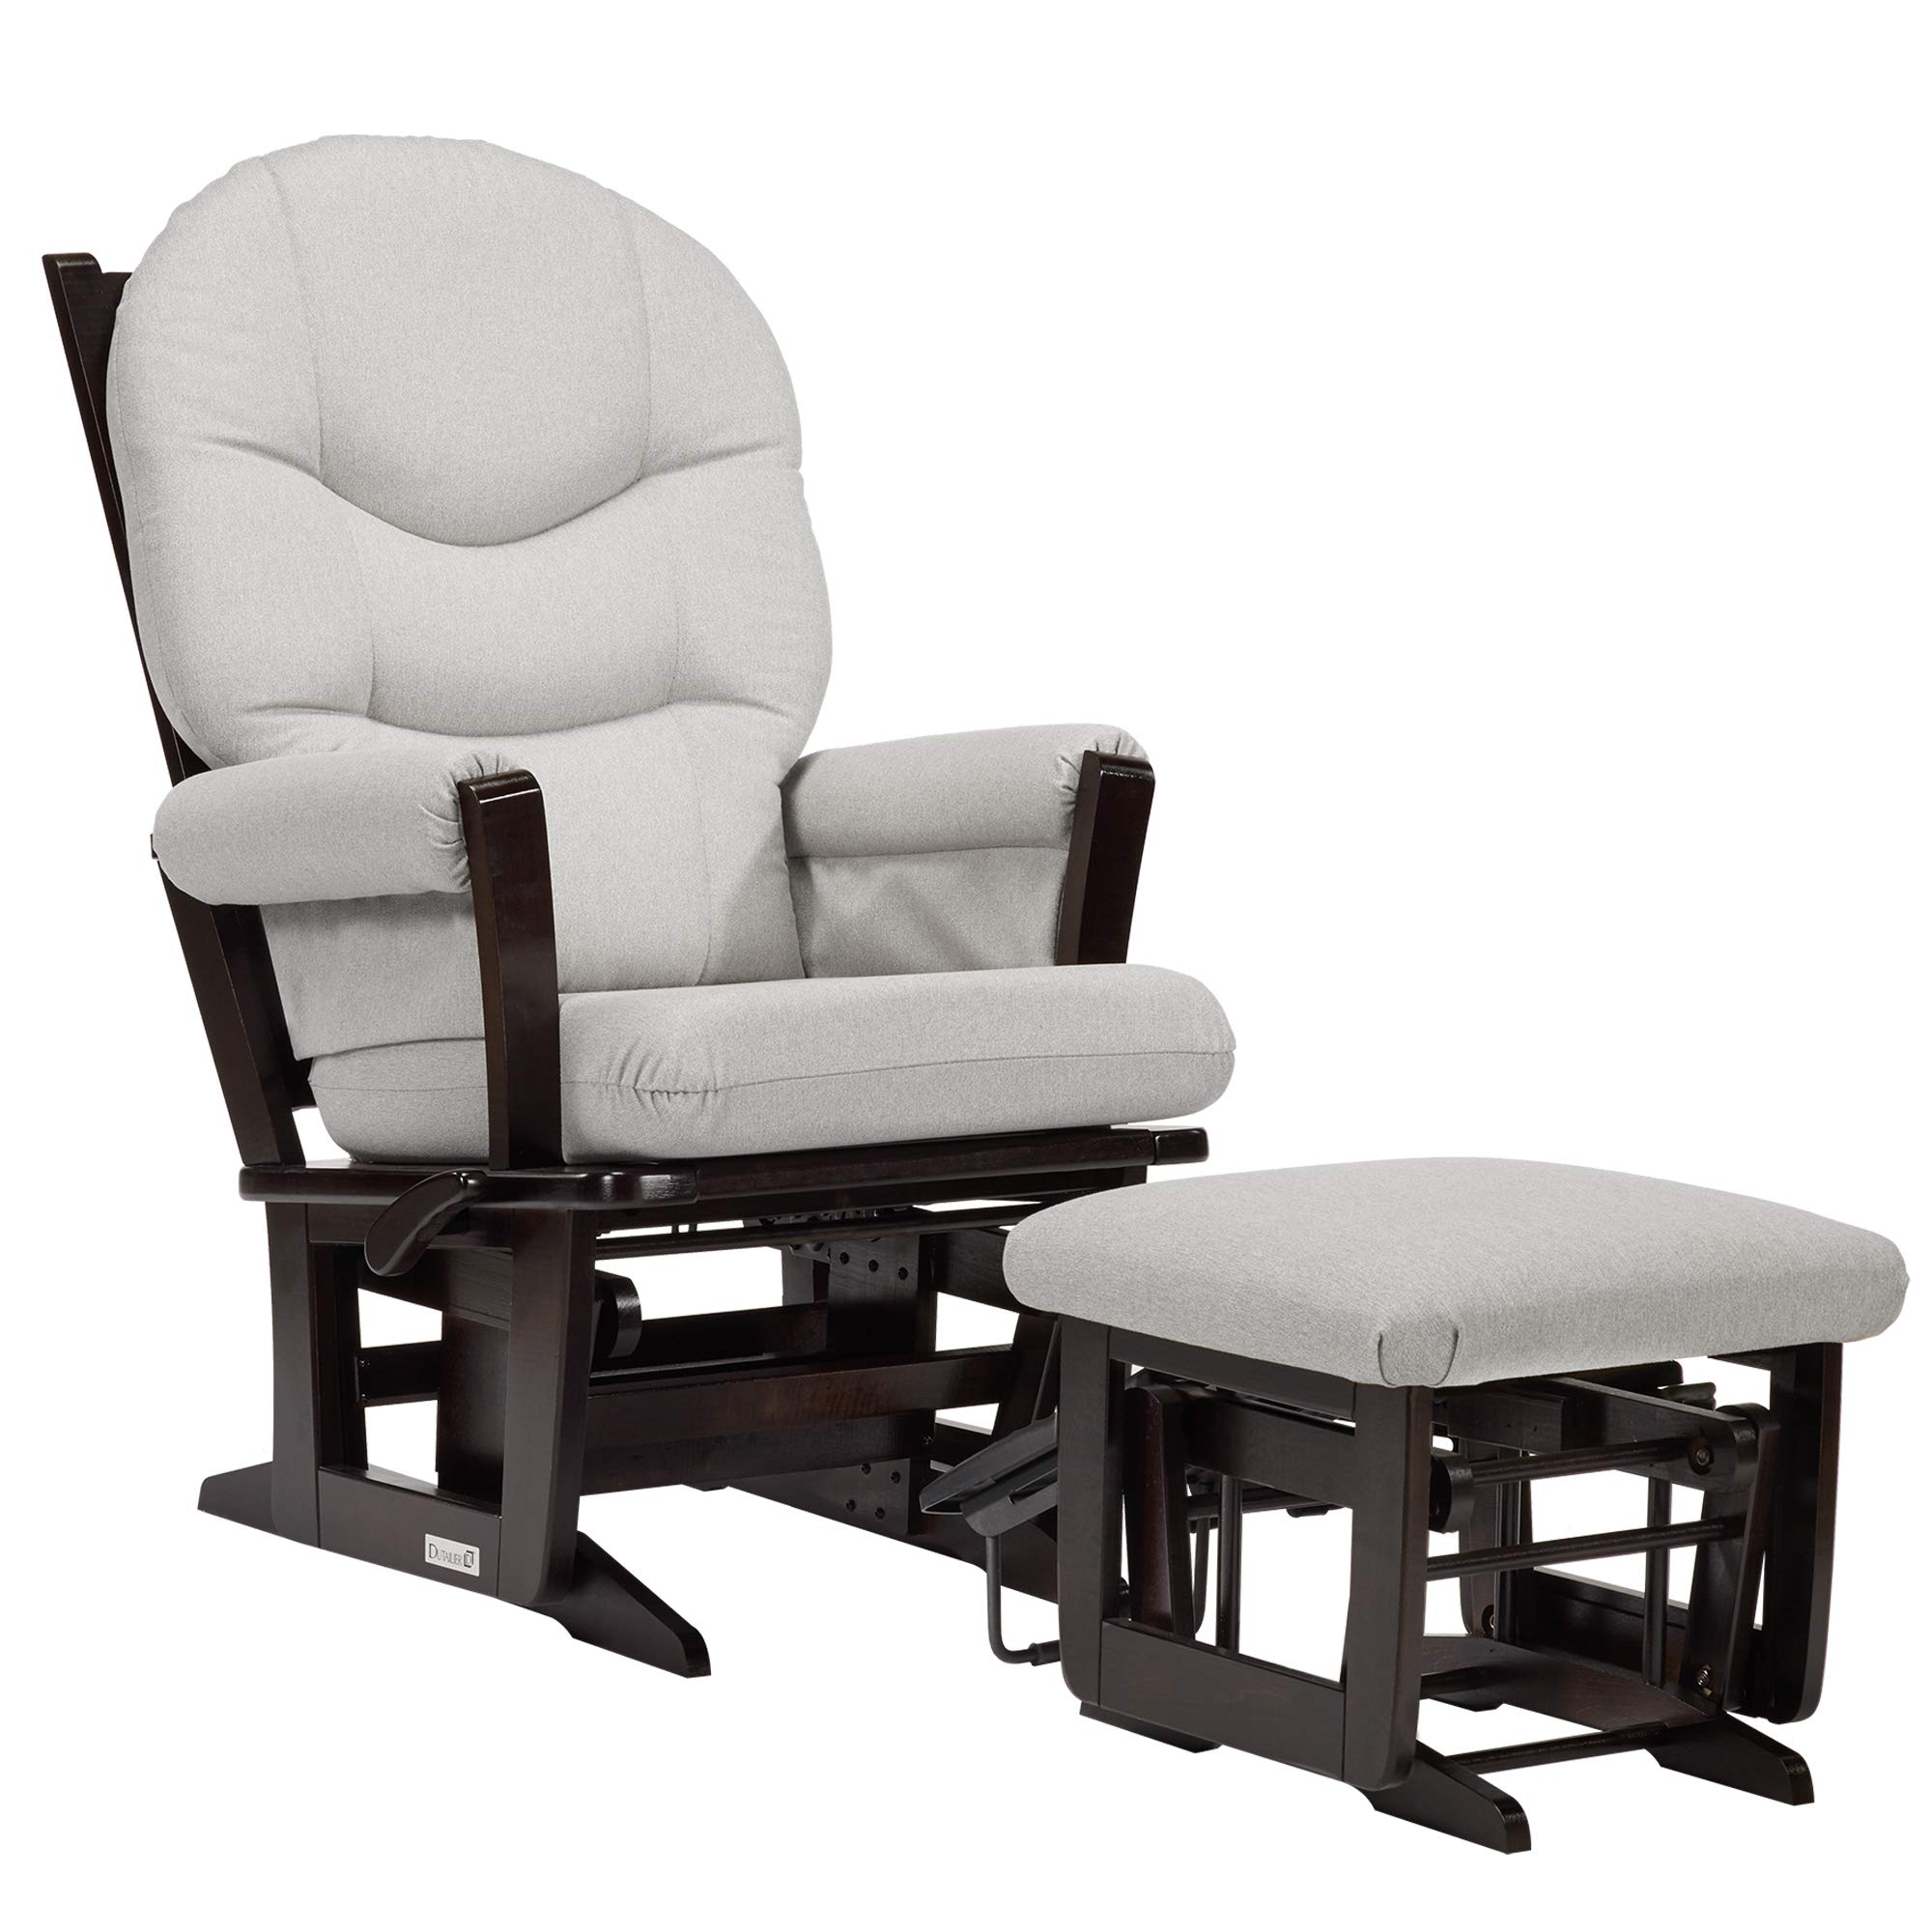 Dutailier Multiposition Lock Recline Nursing Included